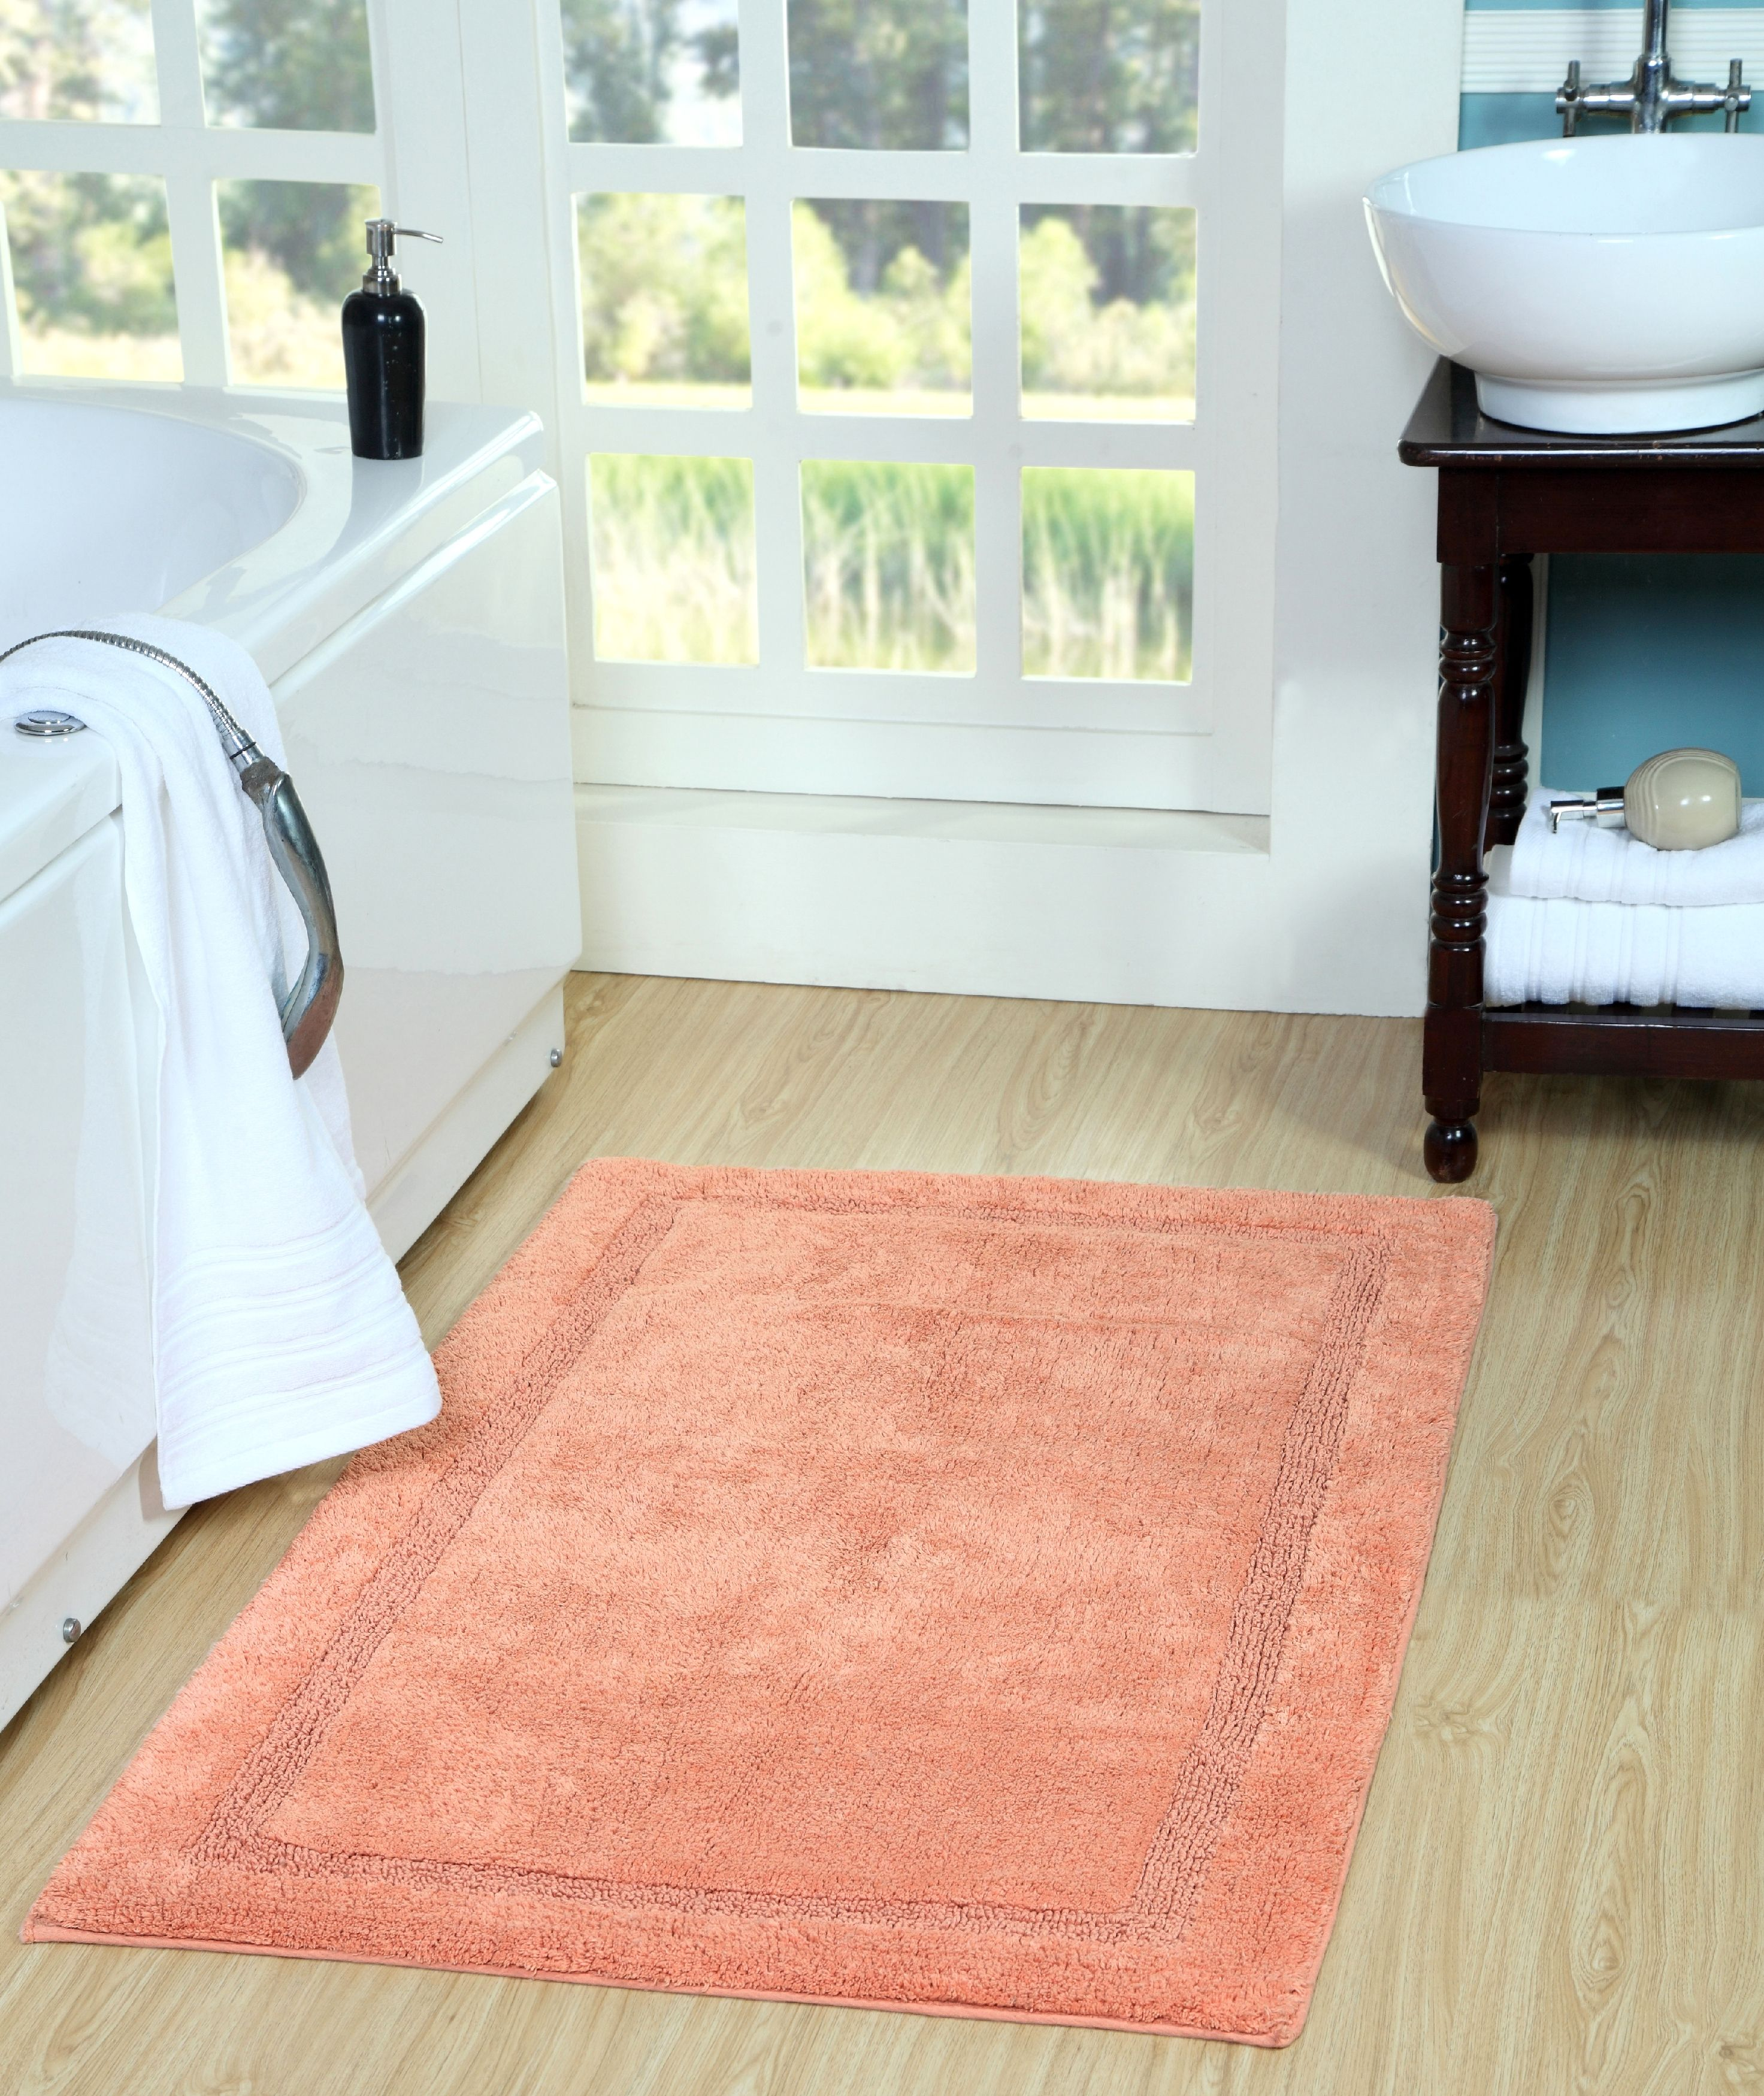 Saffron Fabs Bath Rug Solid Color, Textured Border, Pattern Regency, Assorted Colors and... by Saffron Fabs